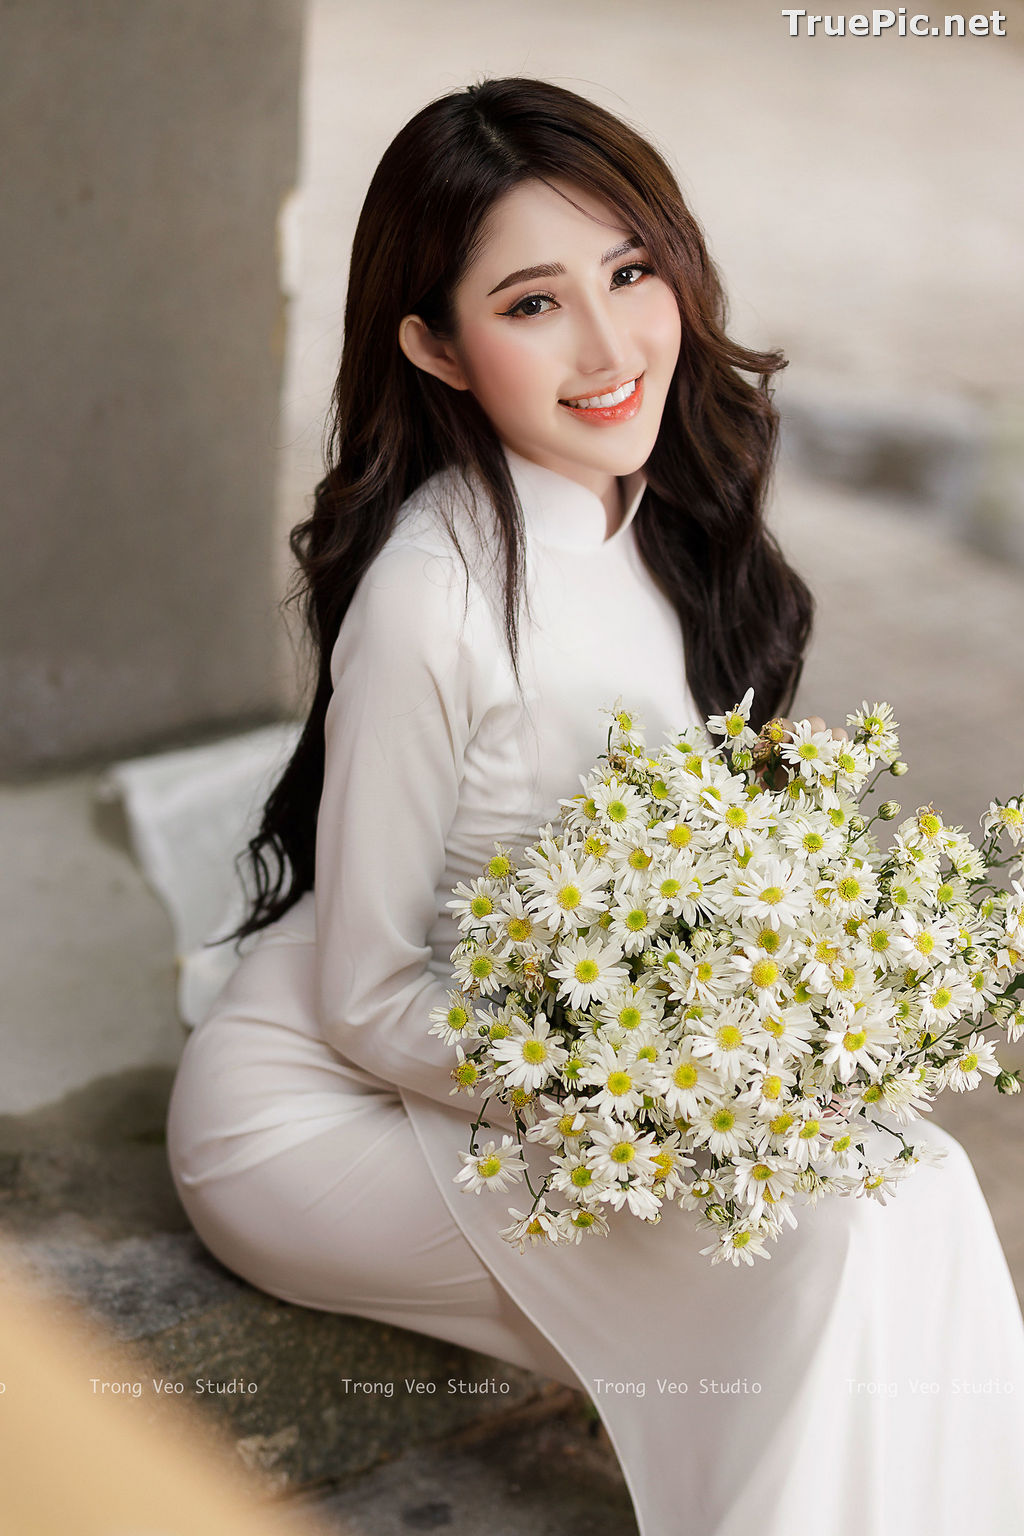 Image The Beauty of Vietnamese Girls with Traditional Dress (Ao Dai) #3 - TruePic.net - Picture-1